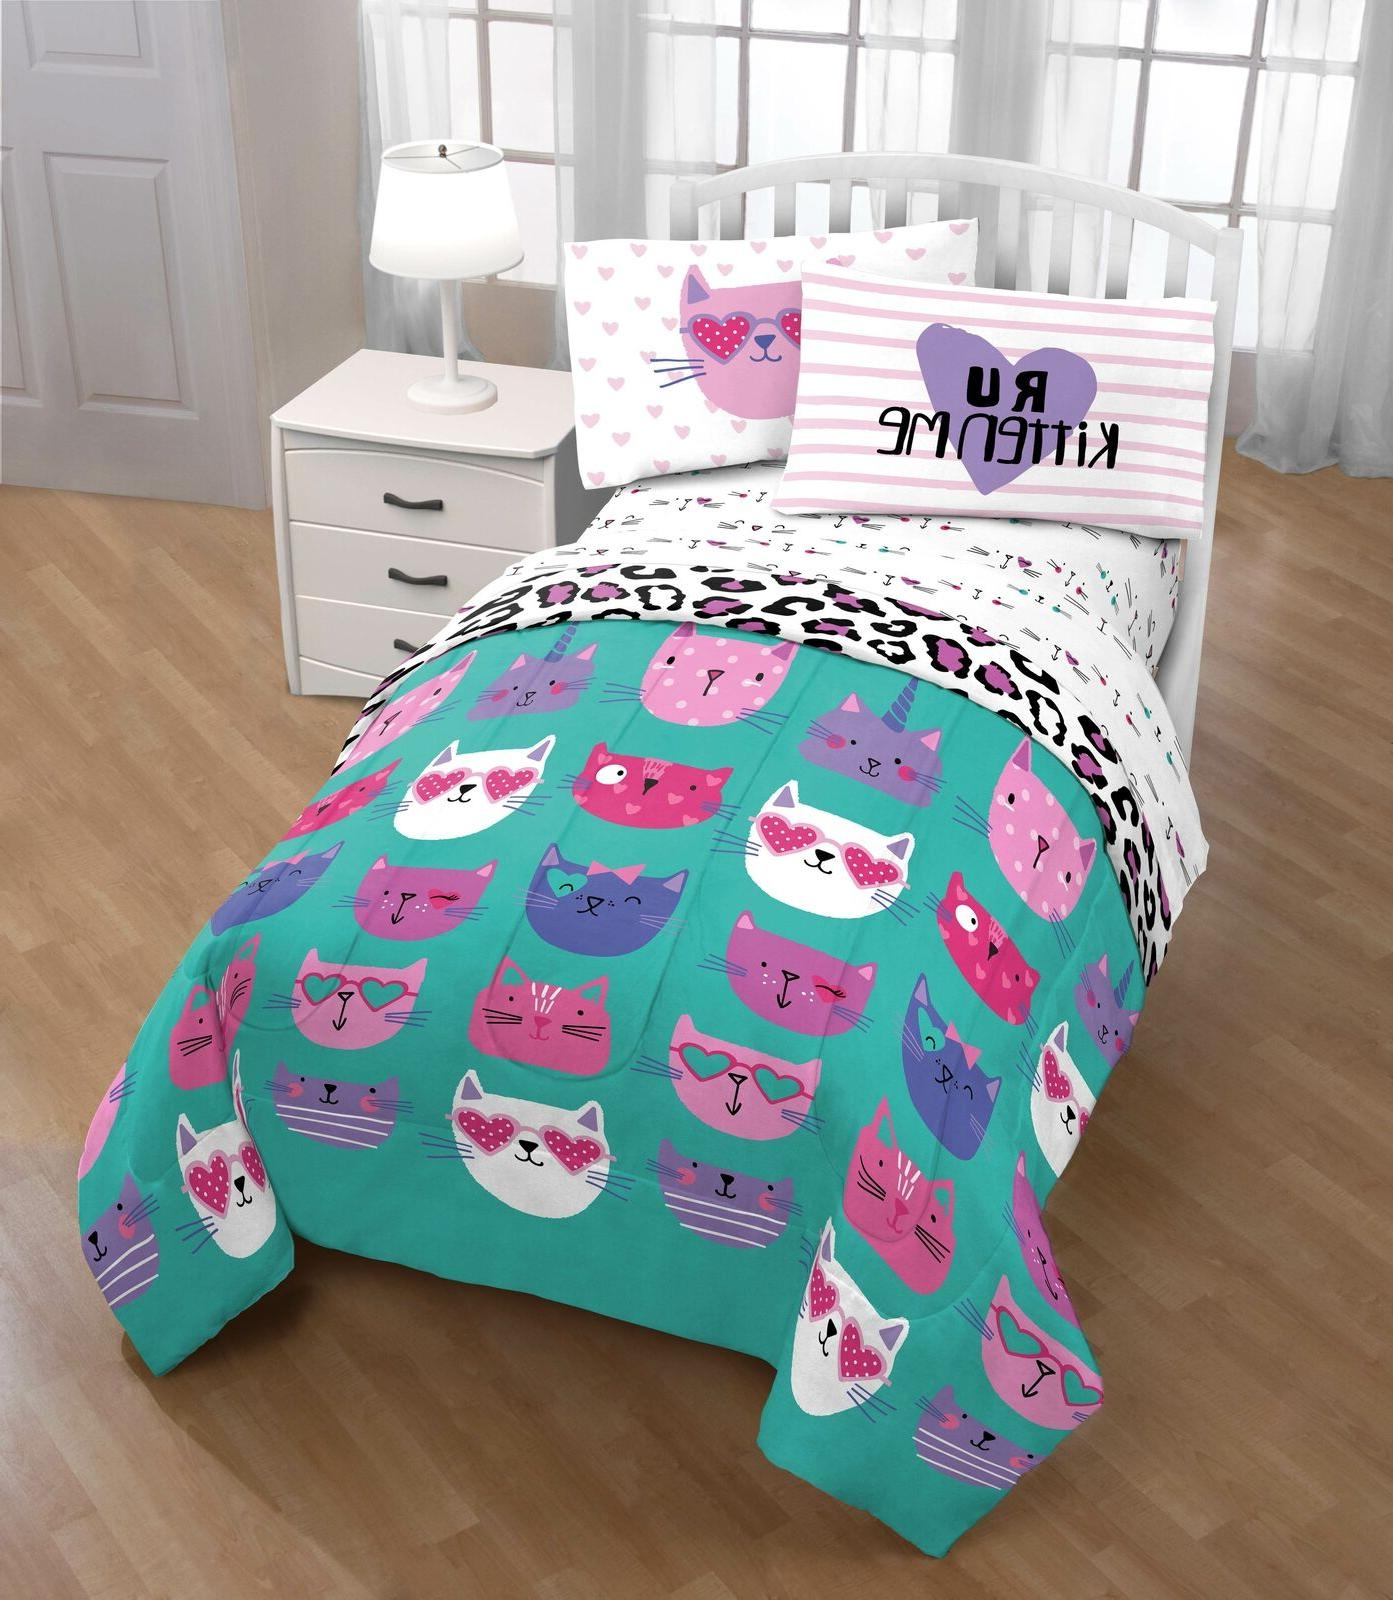 Bedding Sets For Girls Kitty Cat Twin Size Comforter Sheets